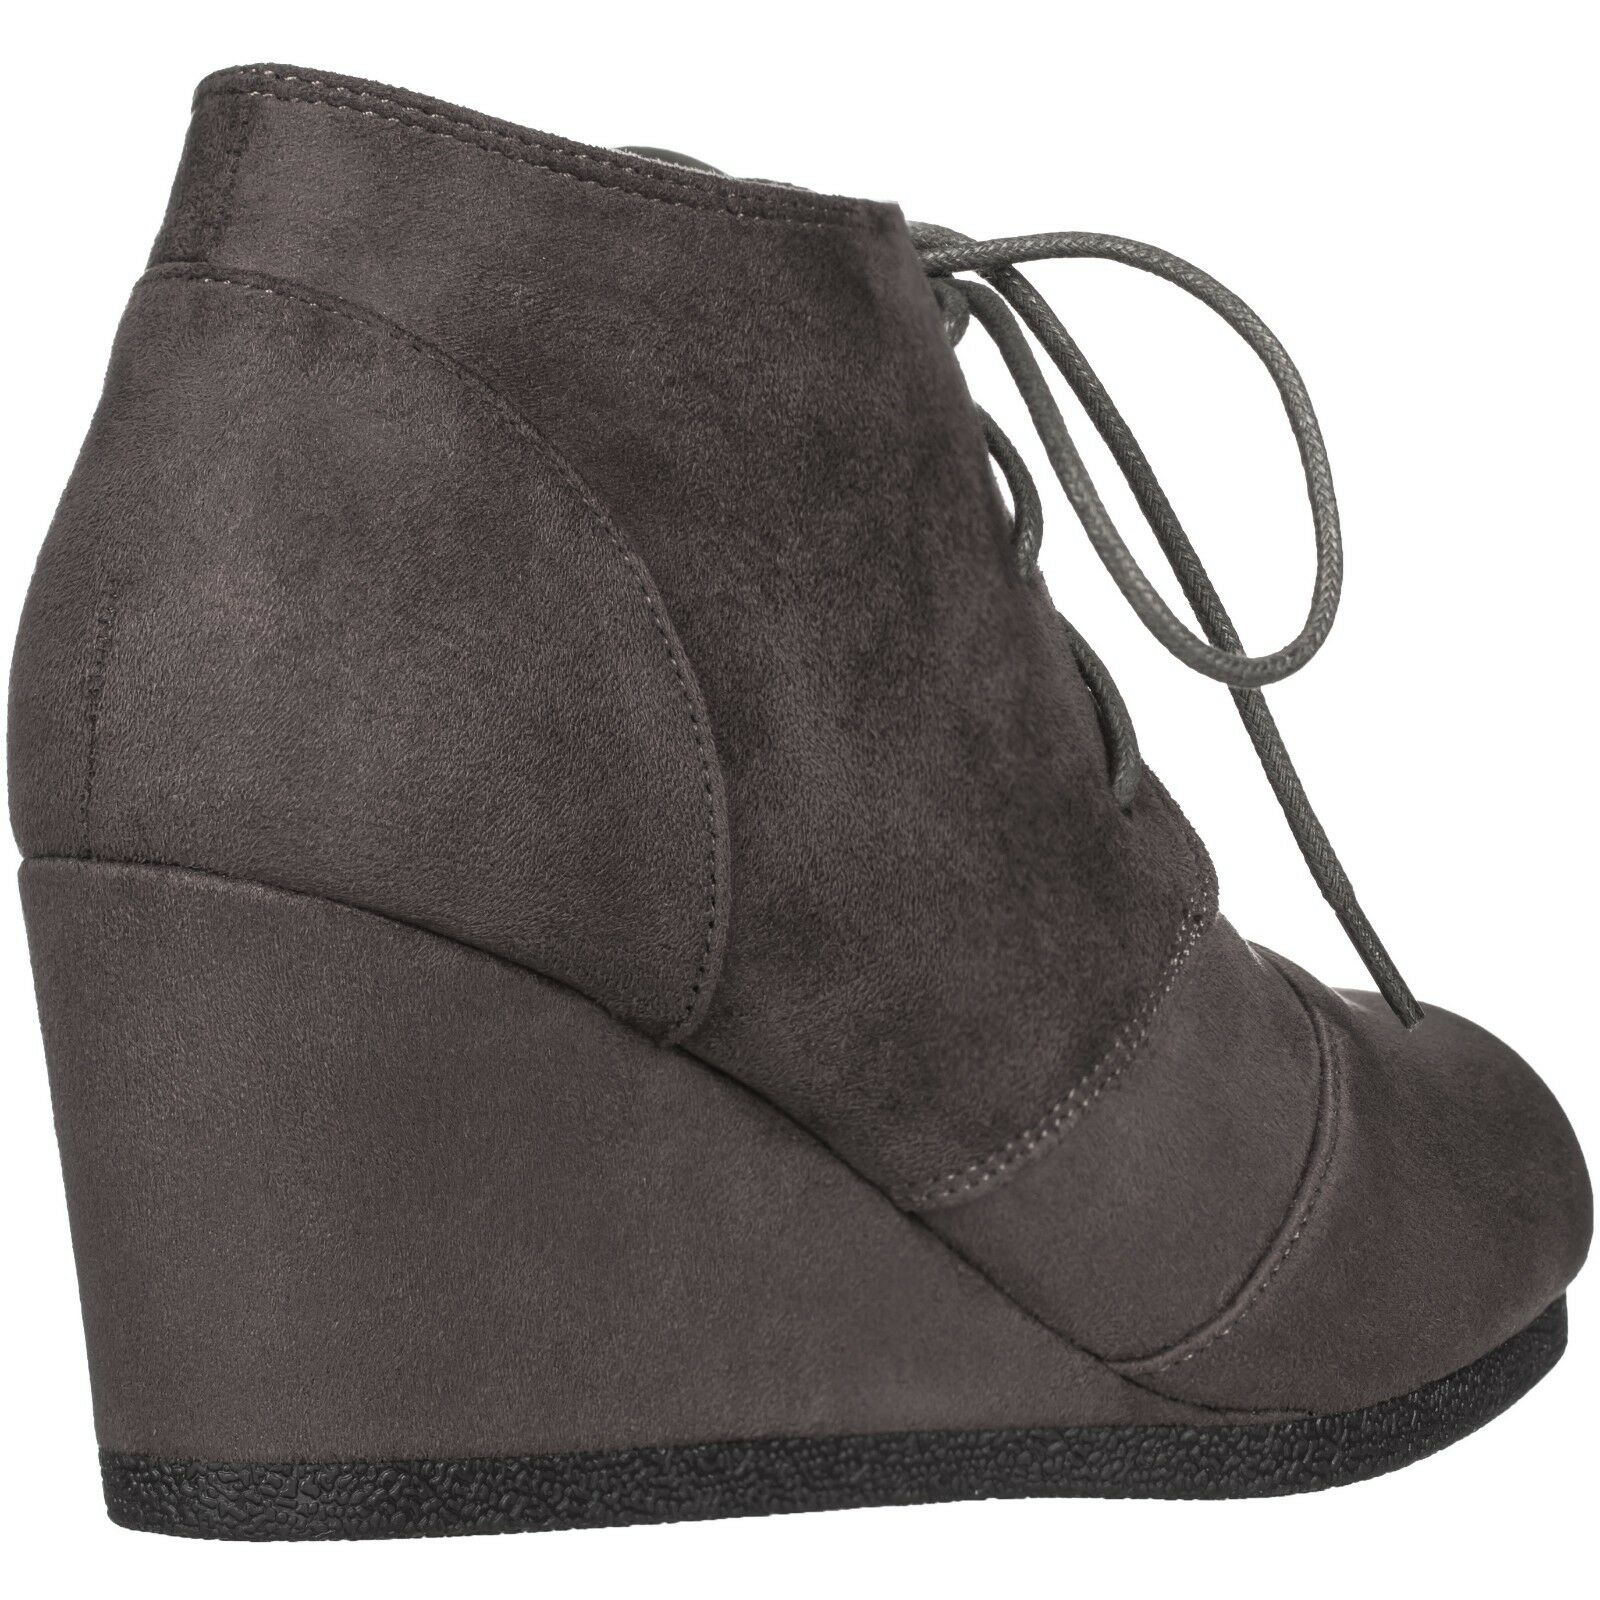 New Women's Round Toe Lace Up Wedge Heels Suede Ankle Boots Booties [WITH BOX]